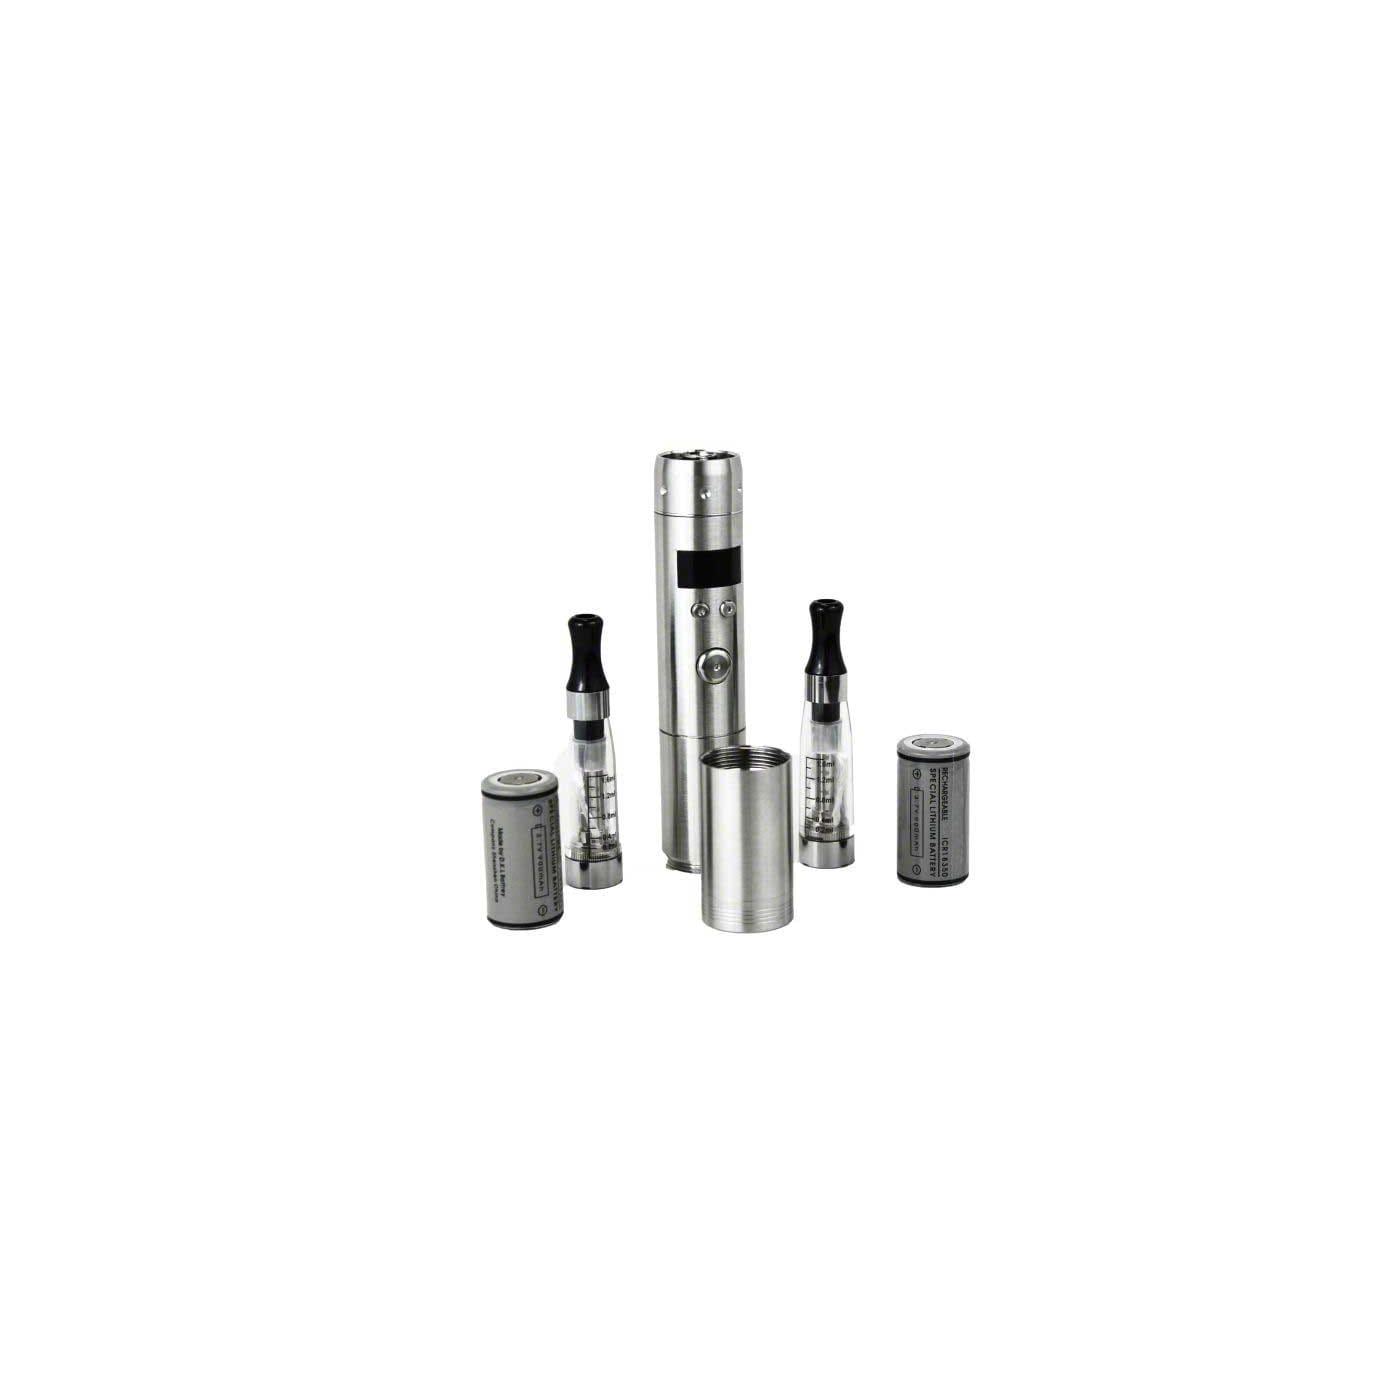 Vamo V5 Kit - Stainless